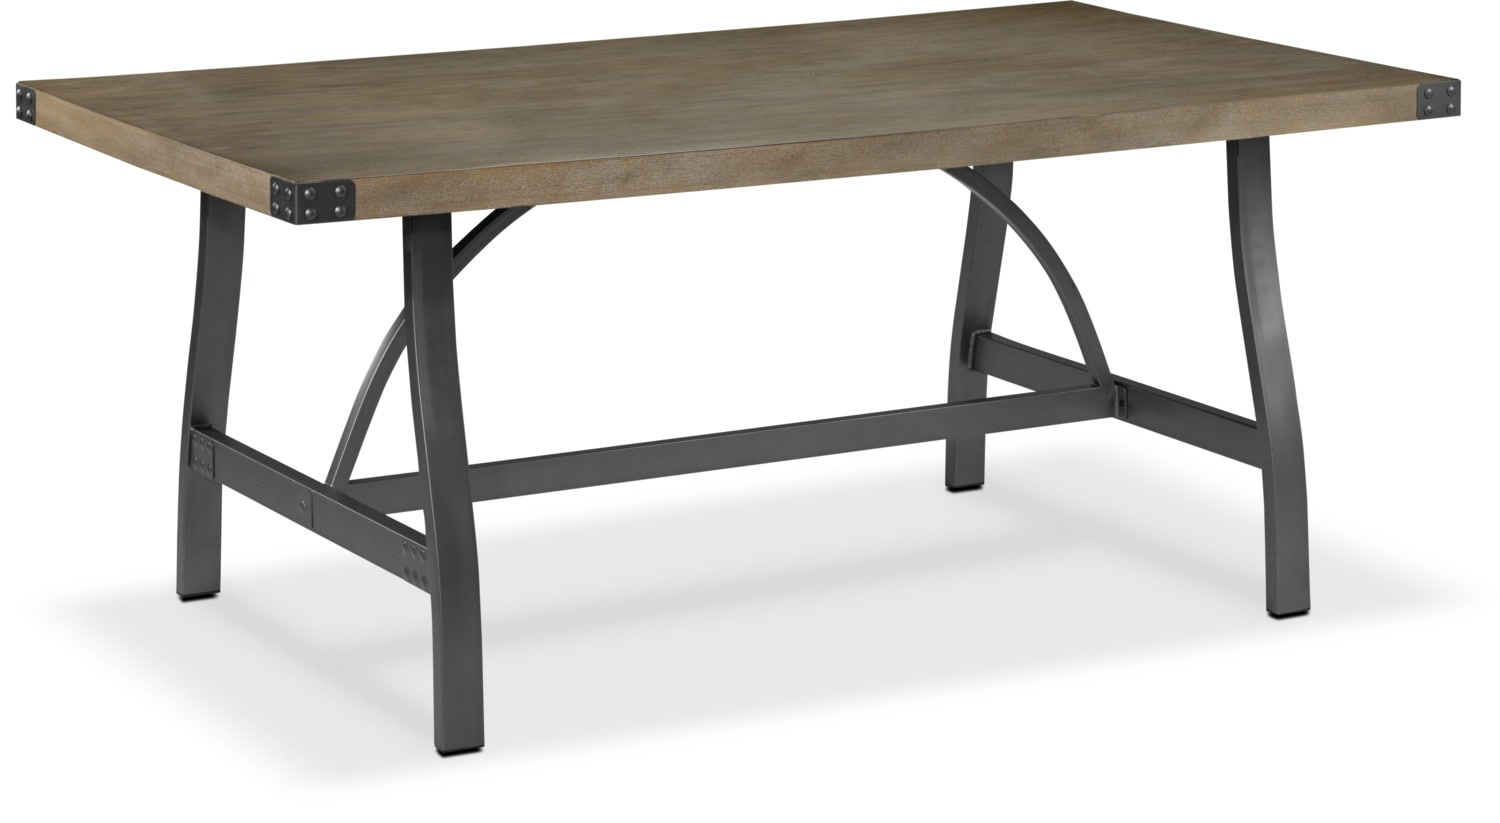 Danica Table - Rustic Pine and Grey